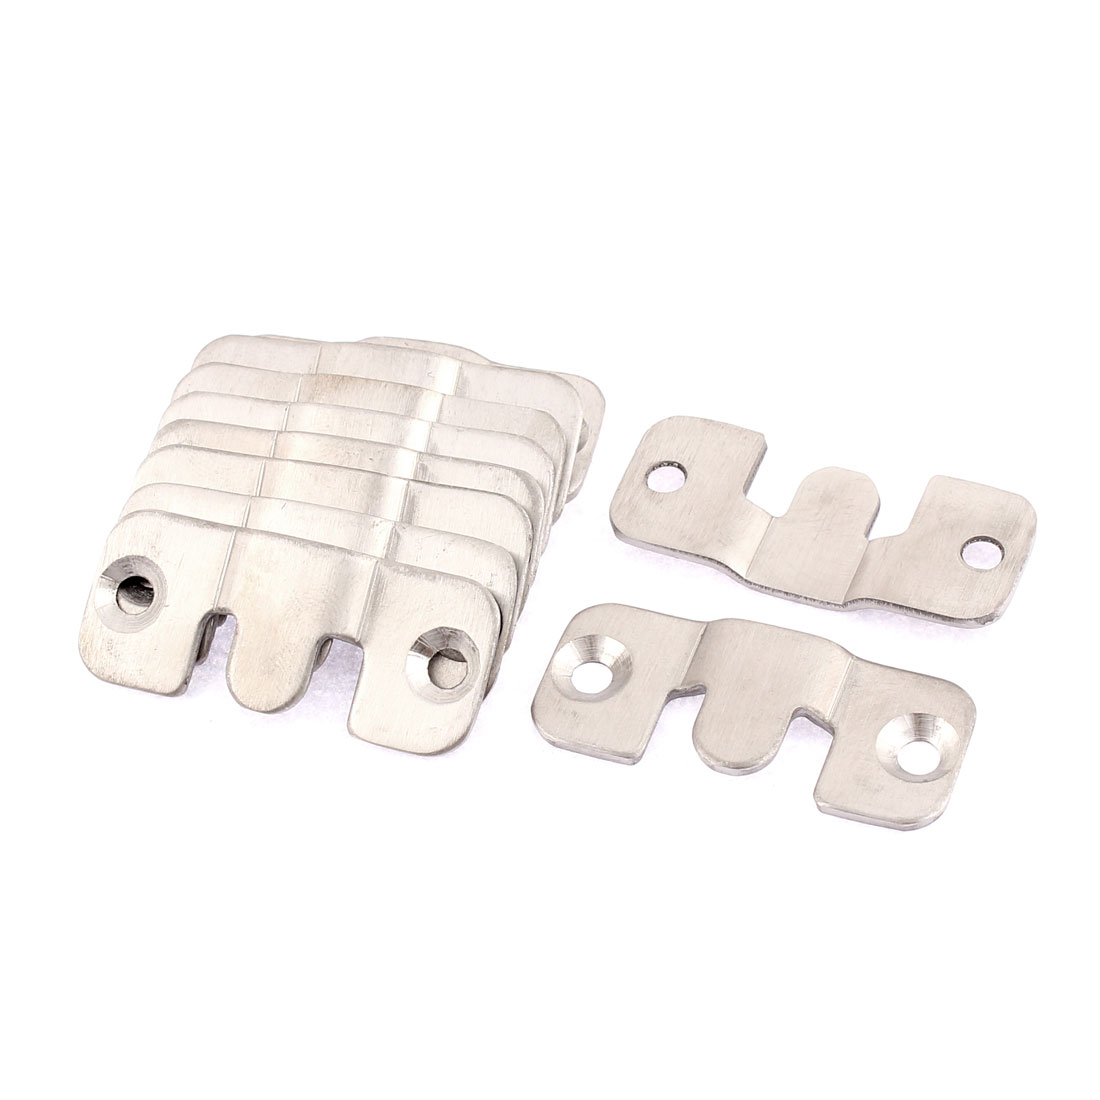 Sofa Photo Frame Stainless Steel Interlock Bracket Joint Connector Hook 10 Pcs